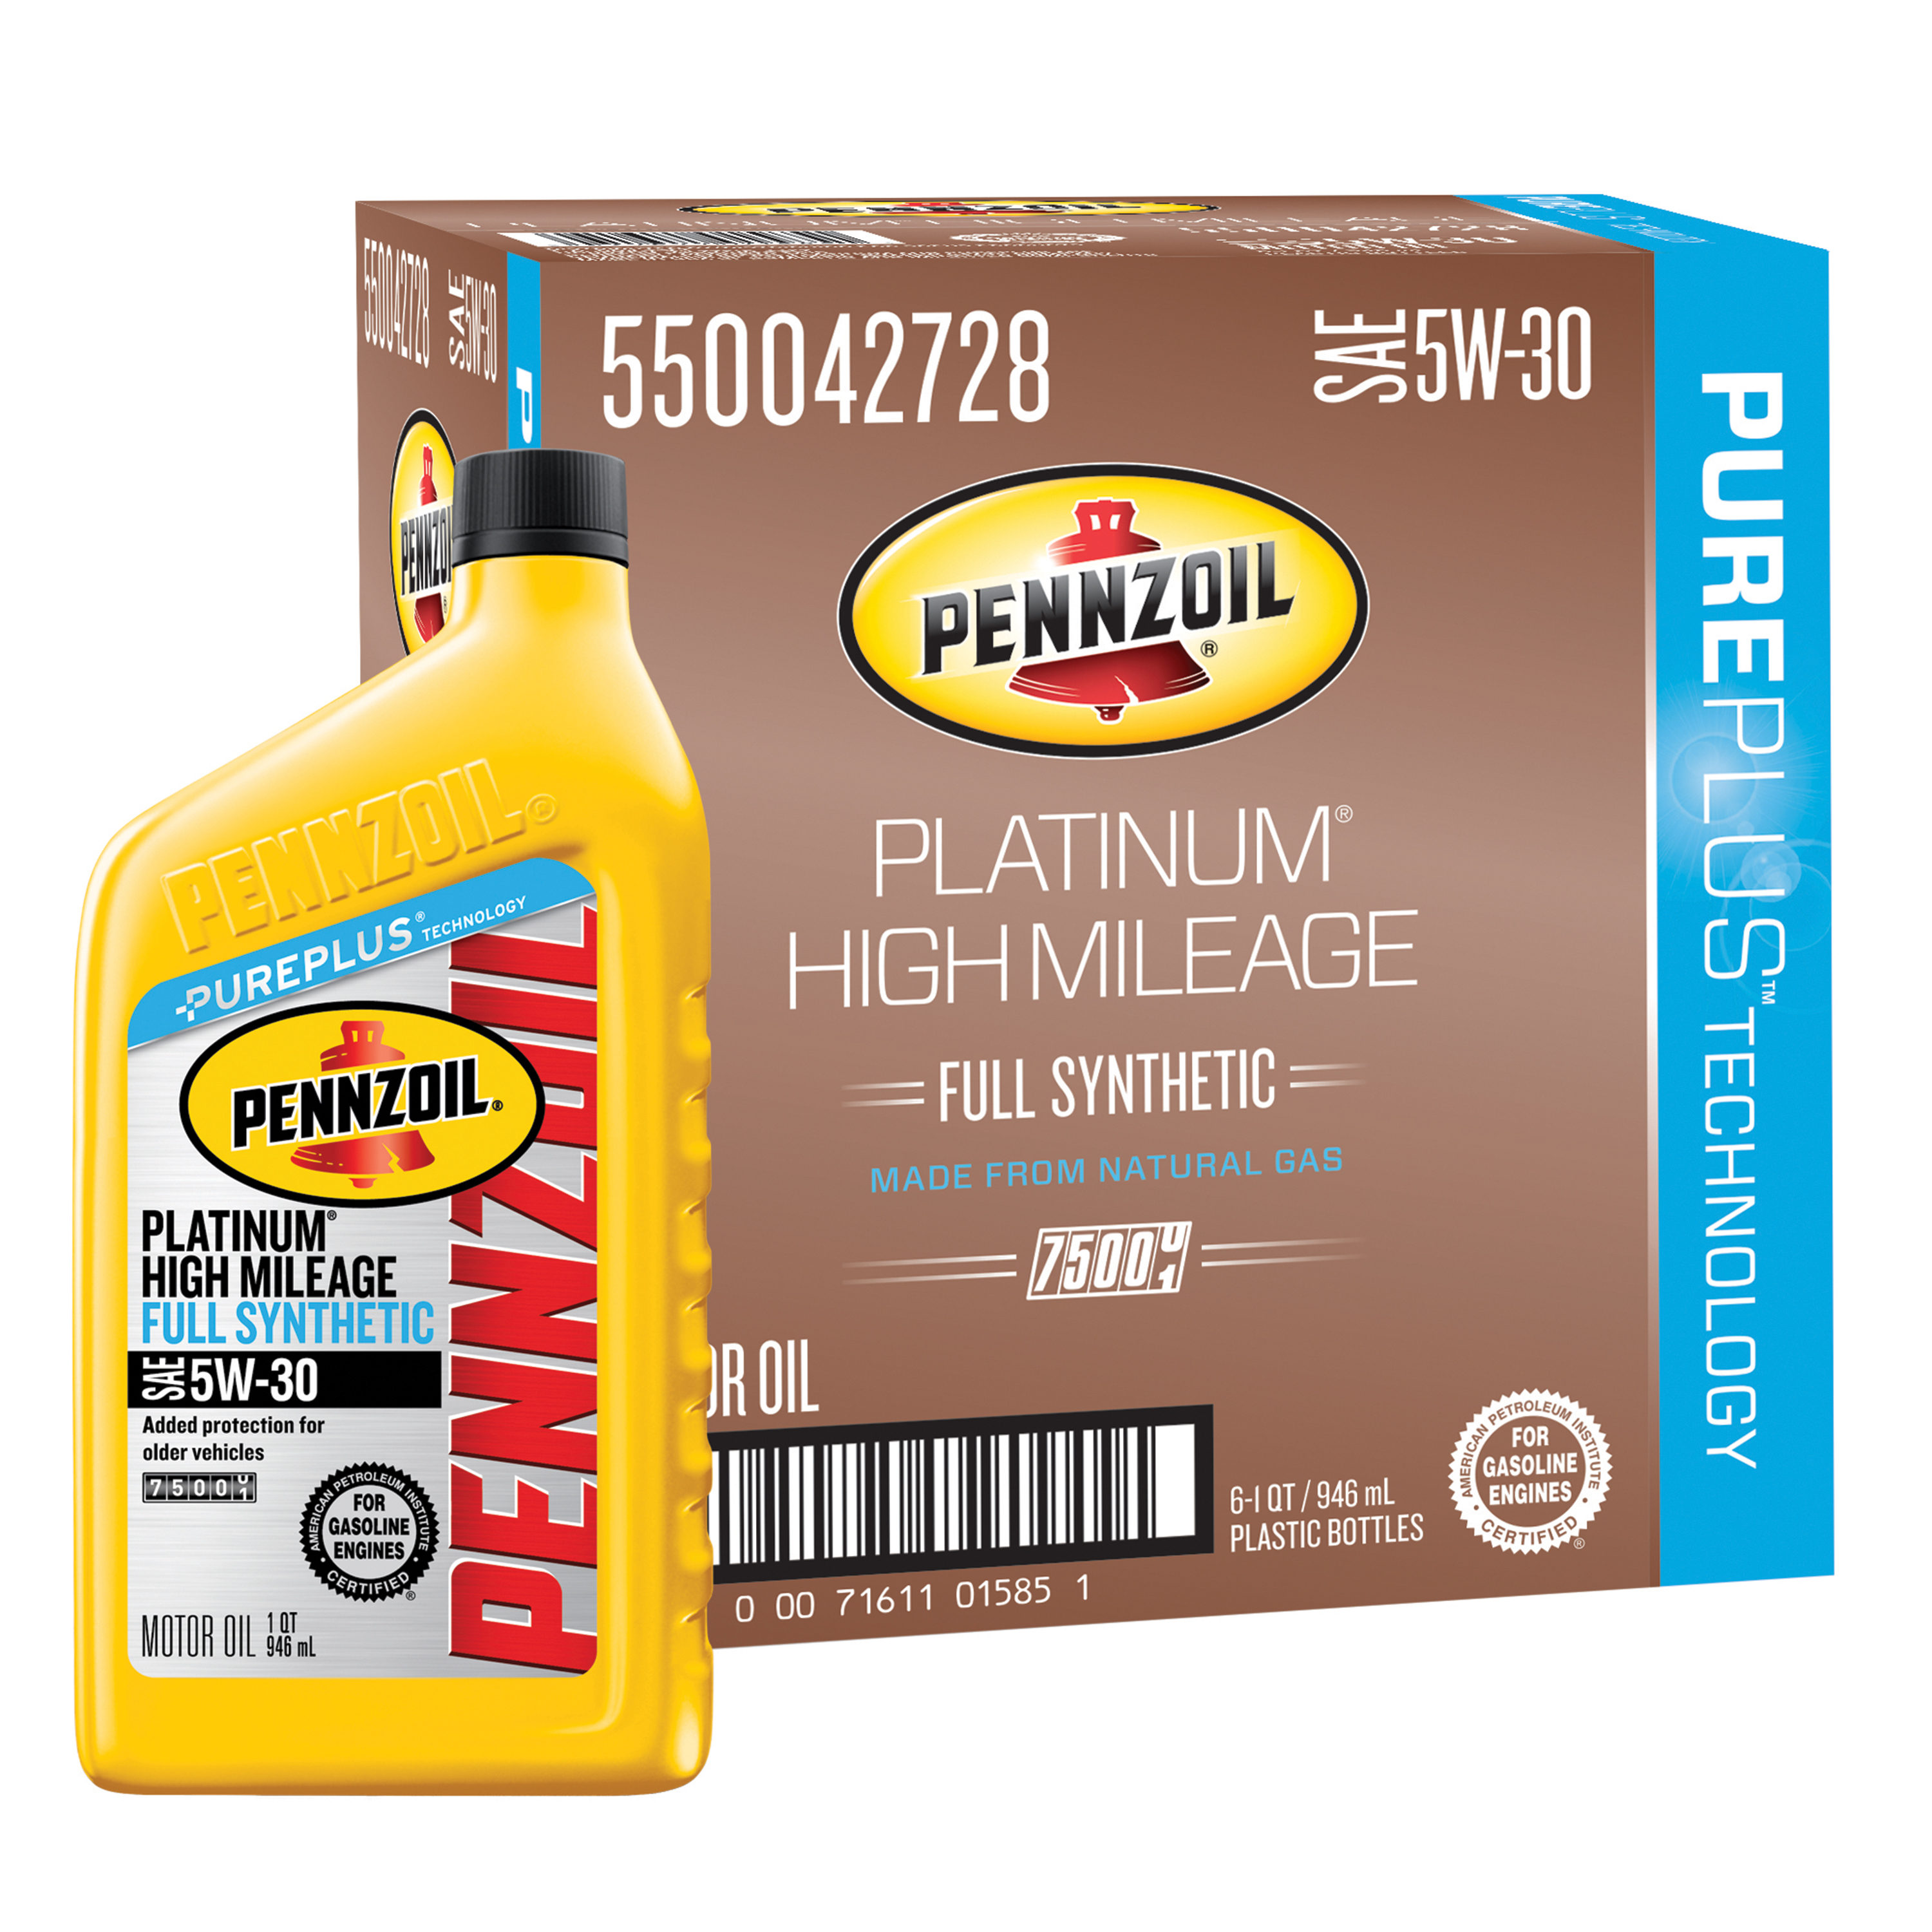 Pennzoil 5w 30 synthetic high mileage 5 quart plus bonus for What is synthetic motor oil made out of